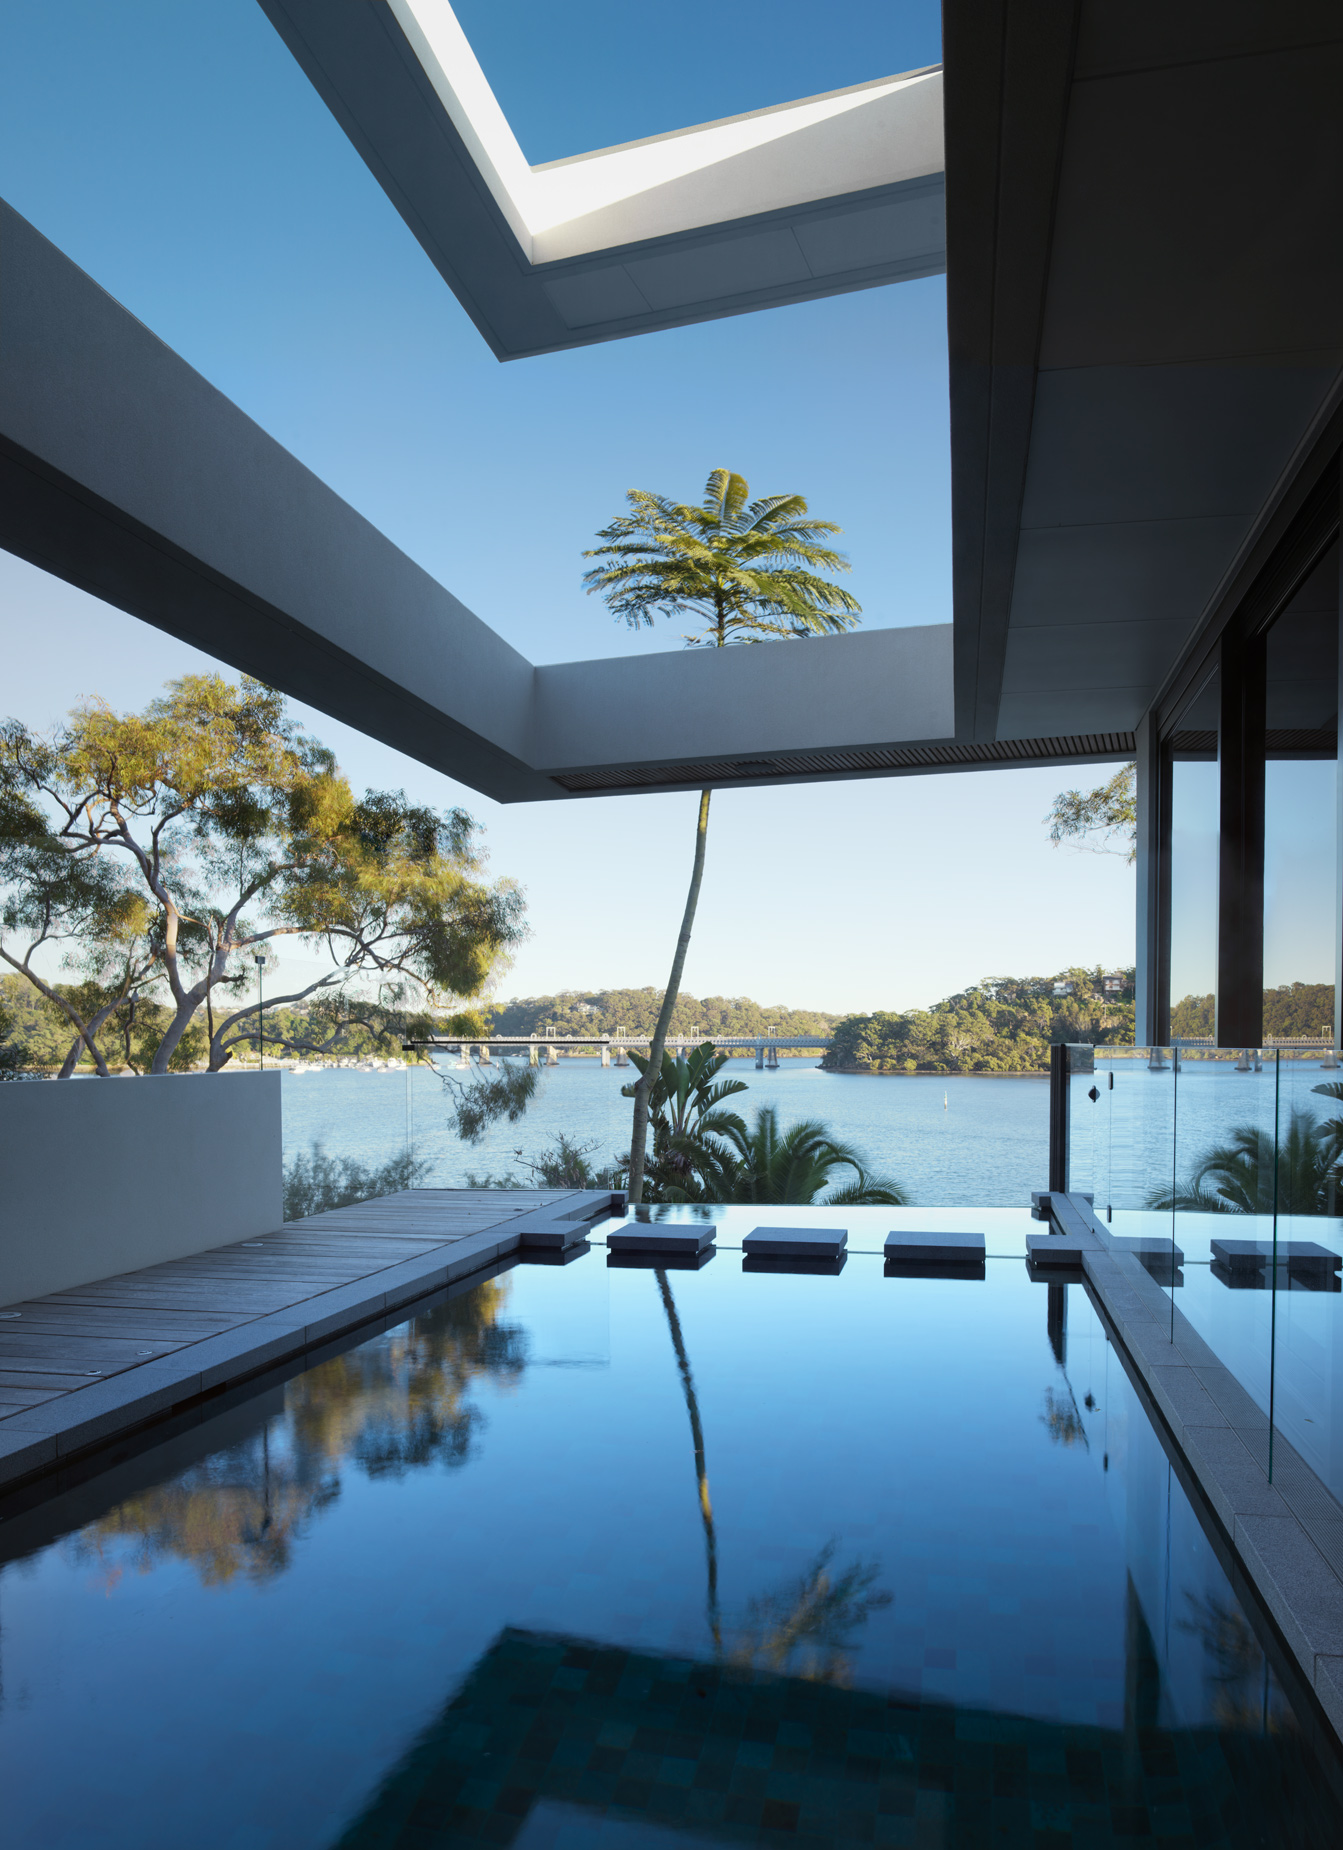 luke-butterly-2020-Oyster-Bay-House-by-Couvaras-Architecture-Sydney-NSW-11